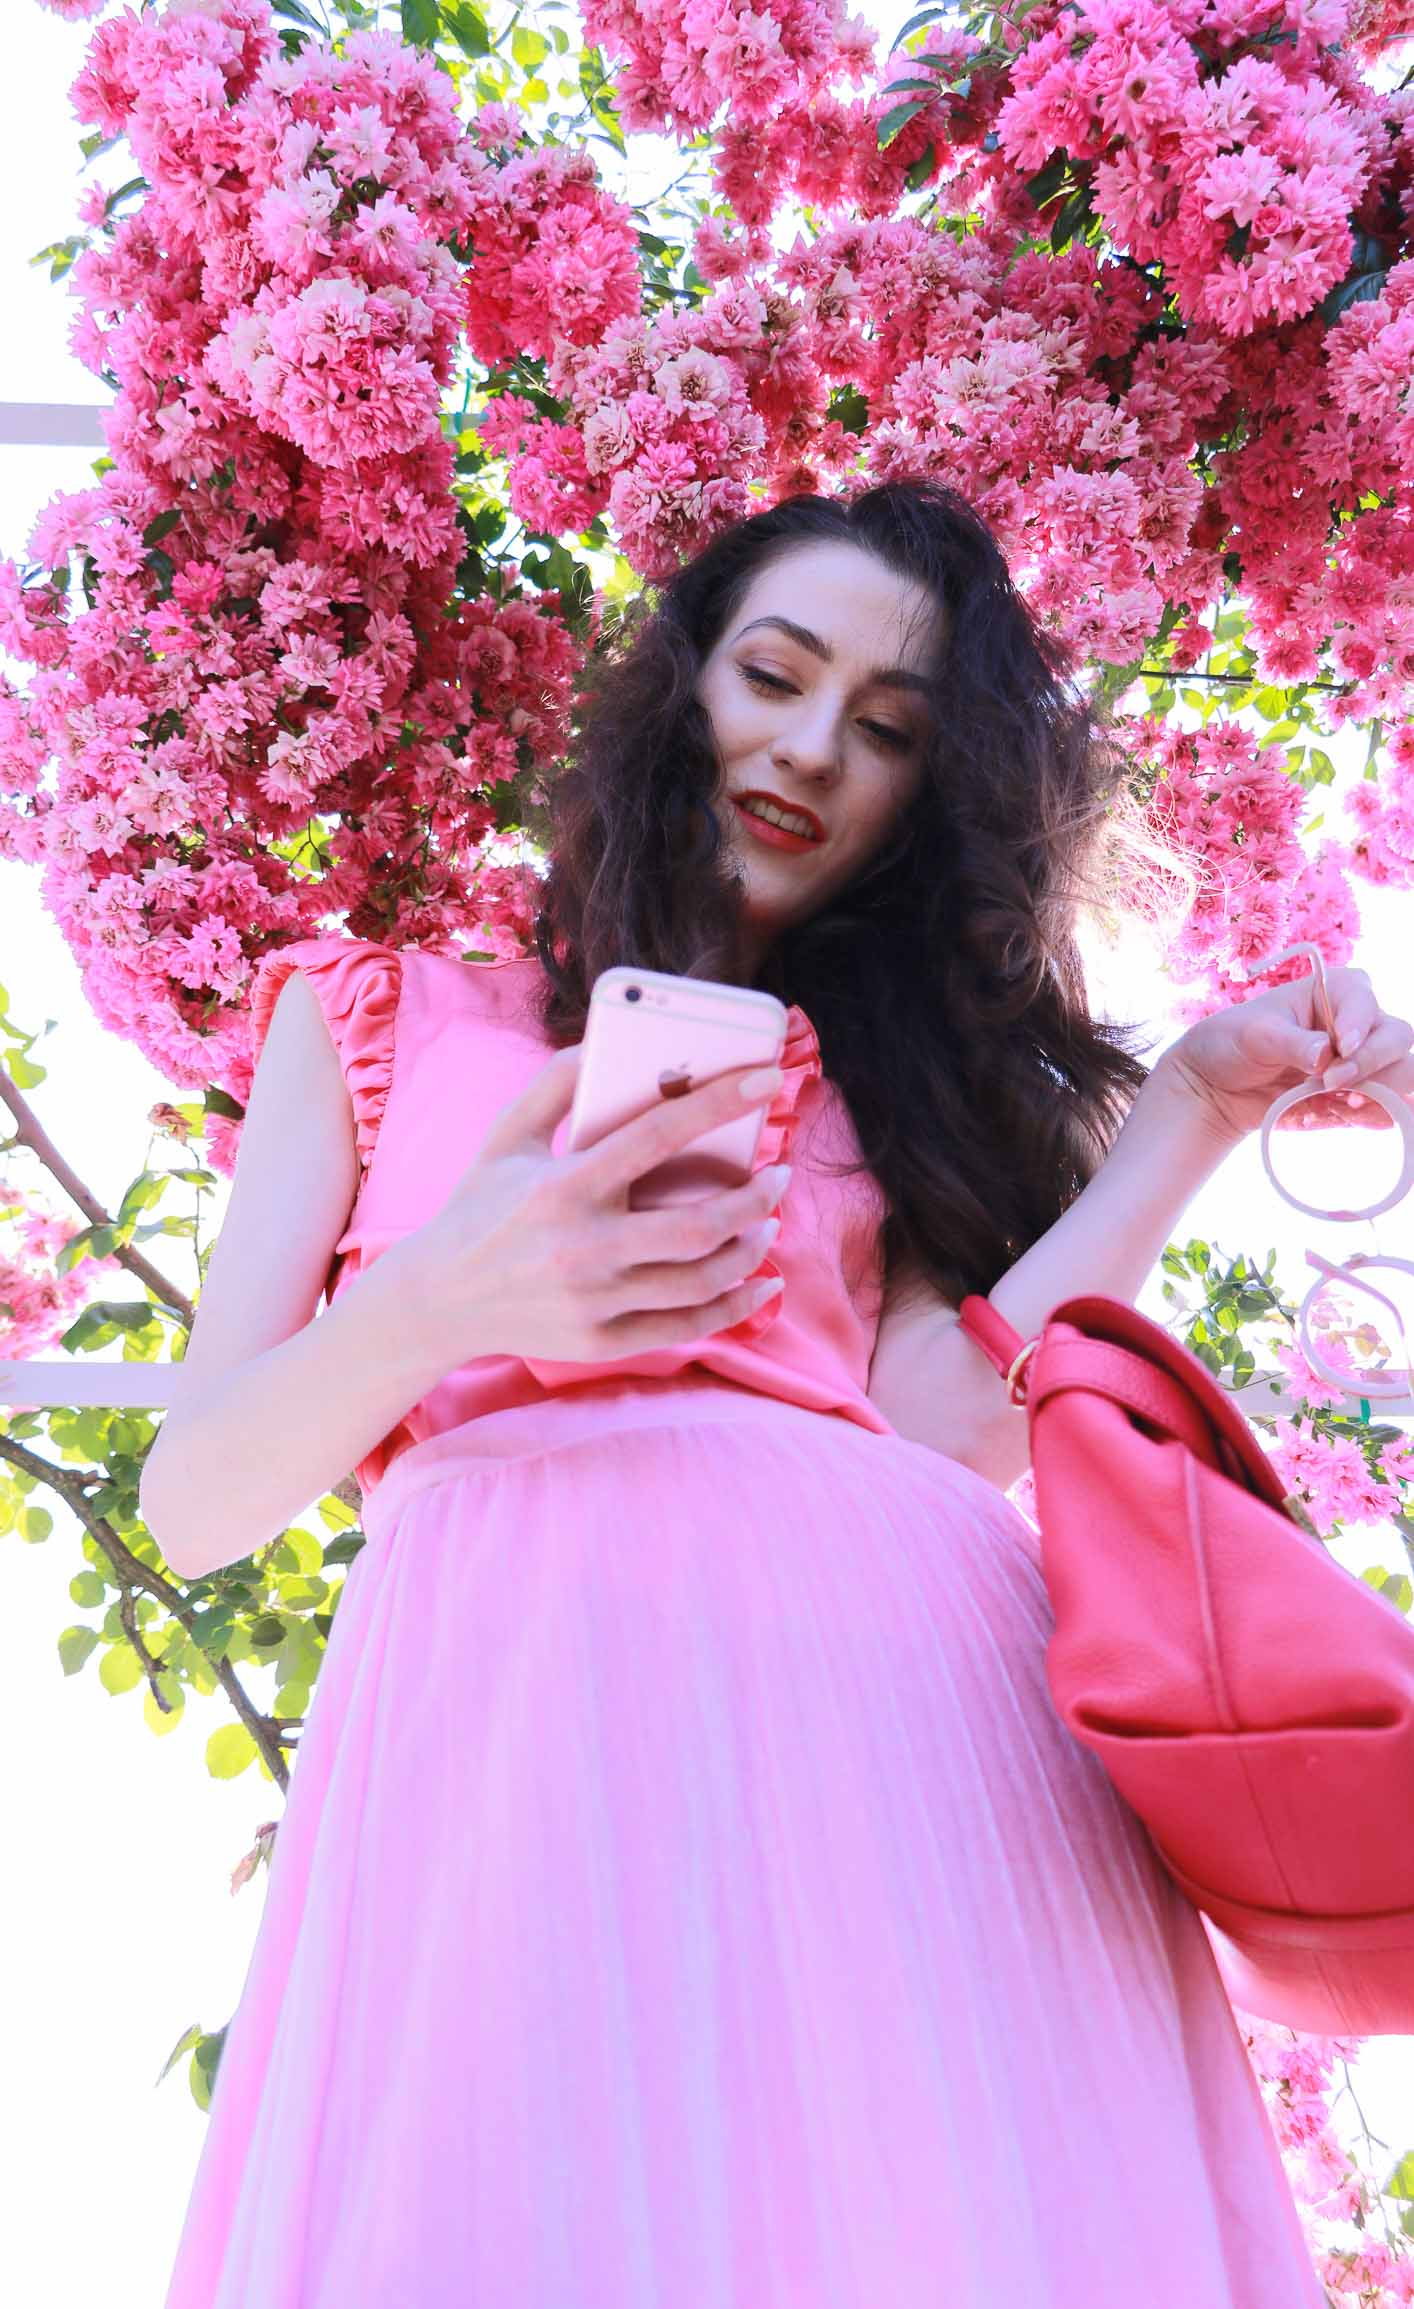 Fashion Blogger Veronika Lipar of Brunette from Wall Street wearing bold red lips, glowing makeup, pink round sunglasses, pink pleated skirt, pink top handle bag and pink ruffled blouse